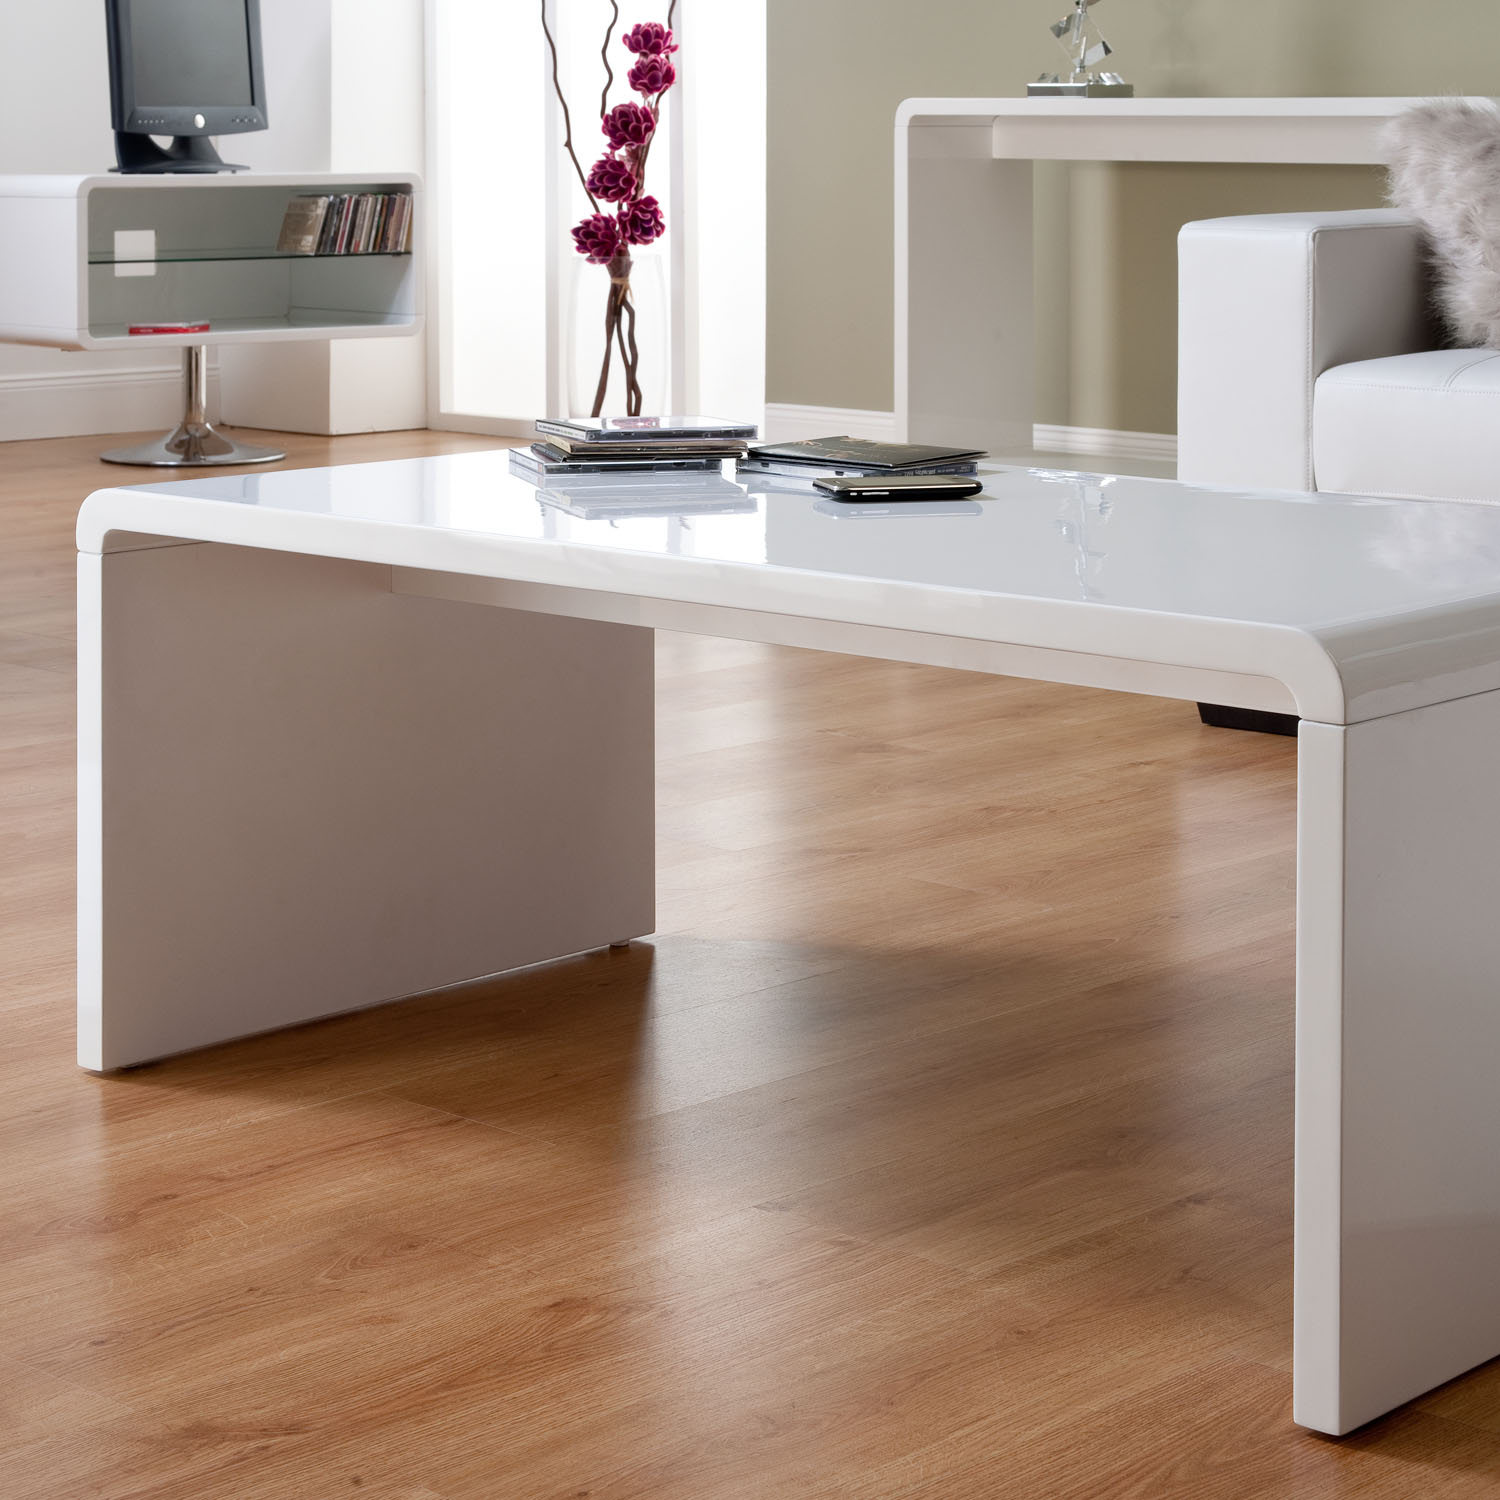 Modern Oval White High Gloss Glossy Lacquer Coffee Table: Toscana Gloss Coffee Table